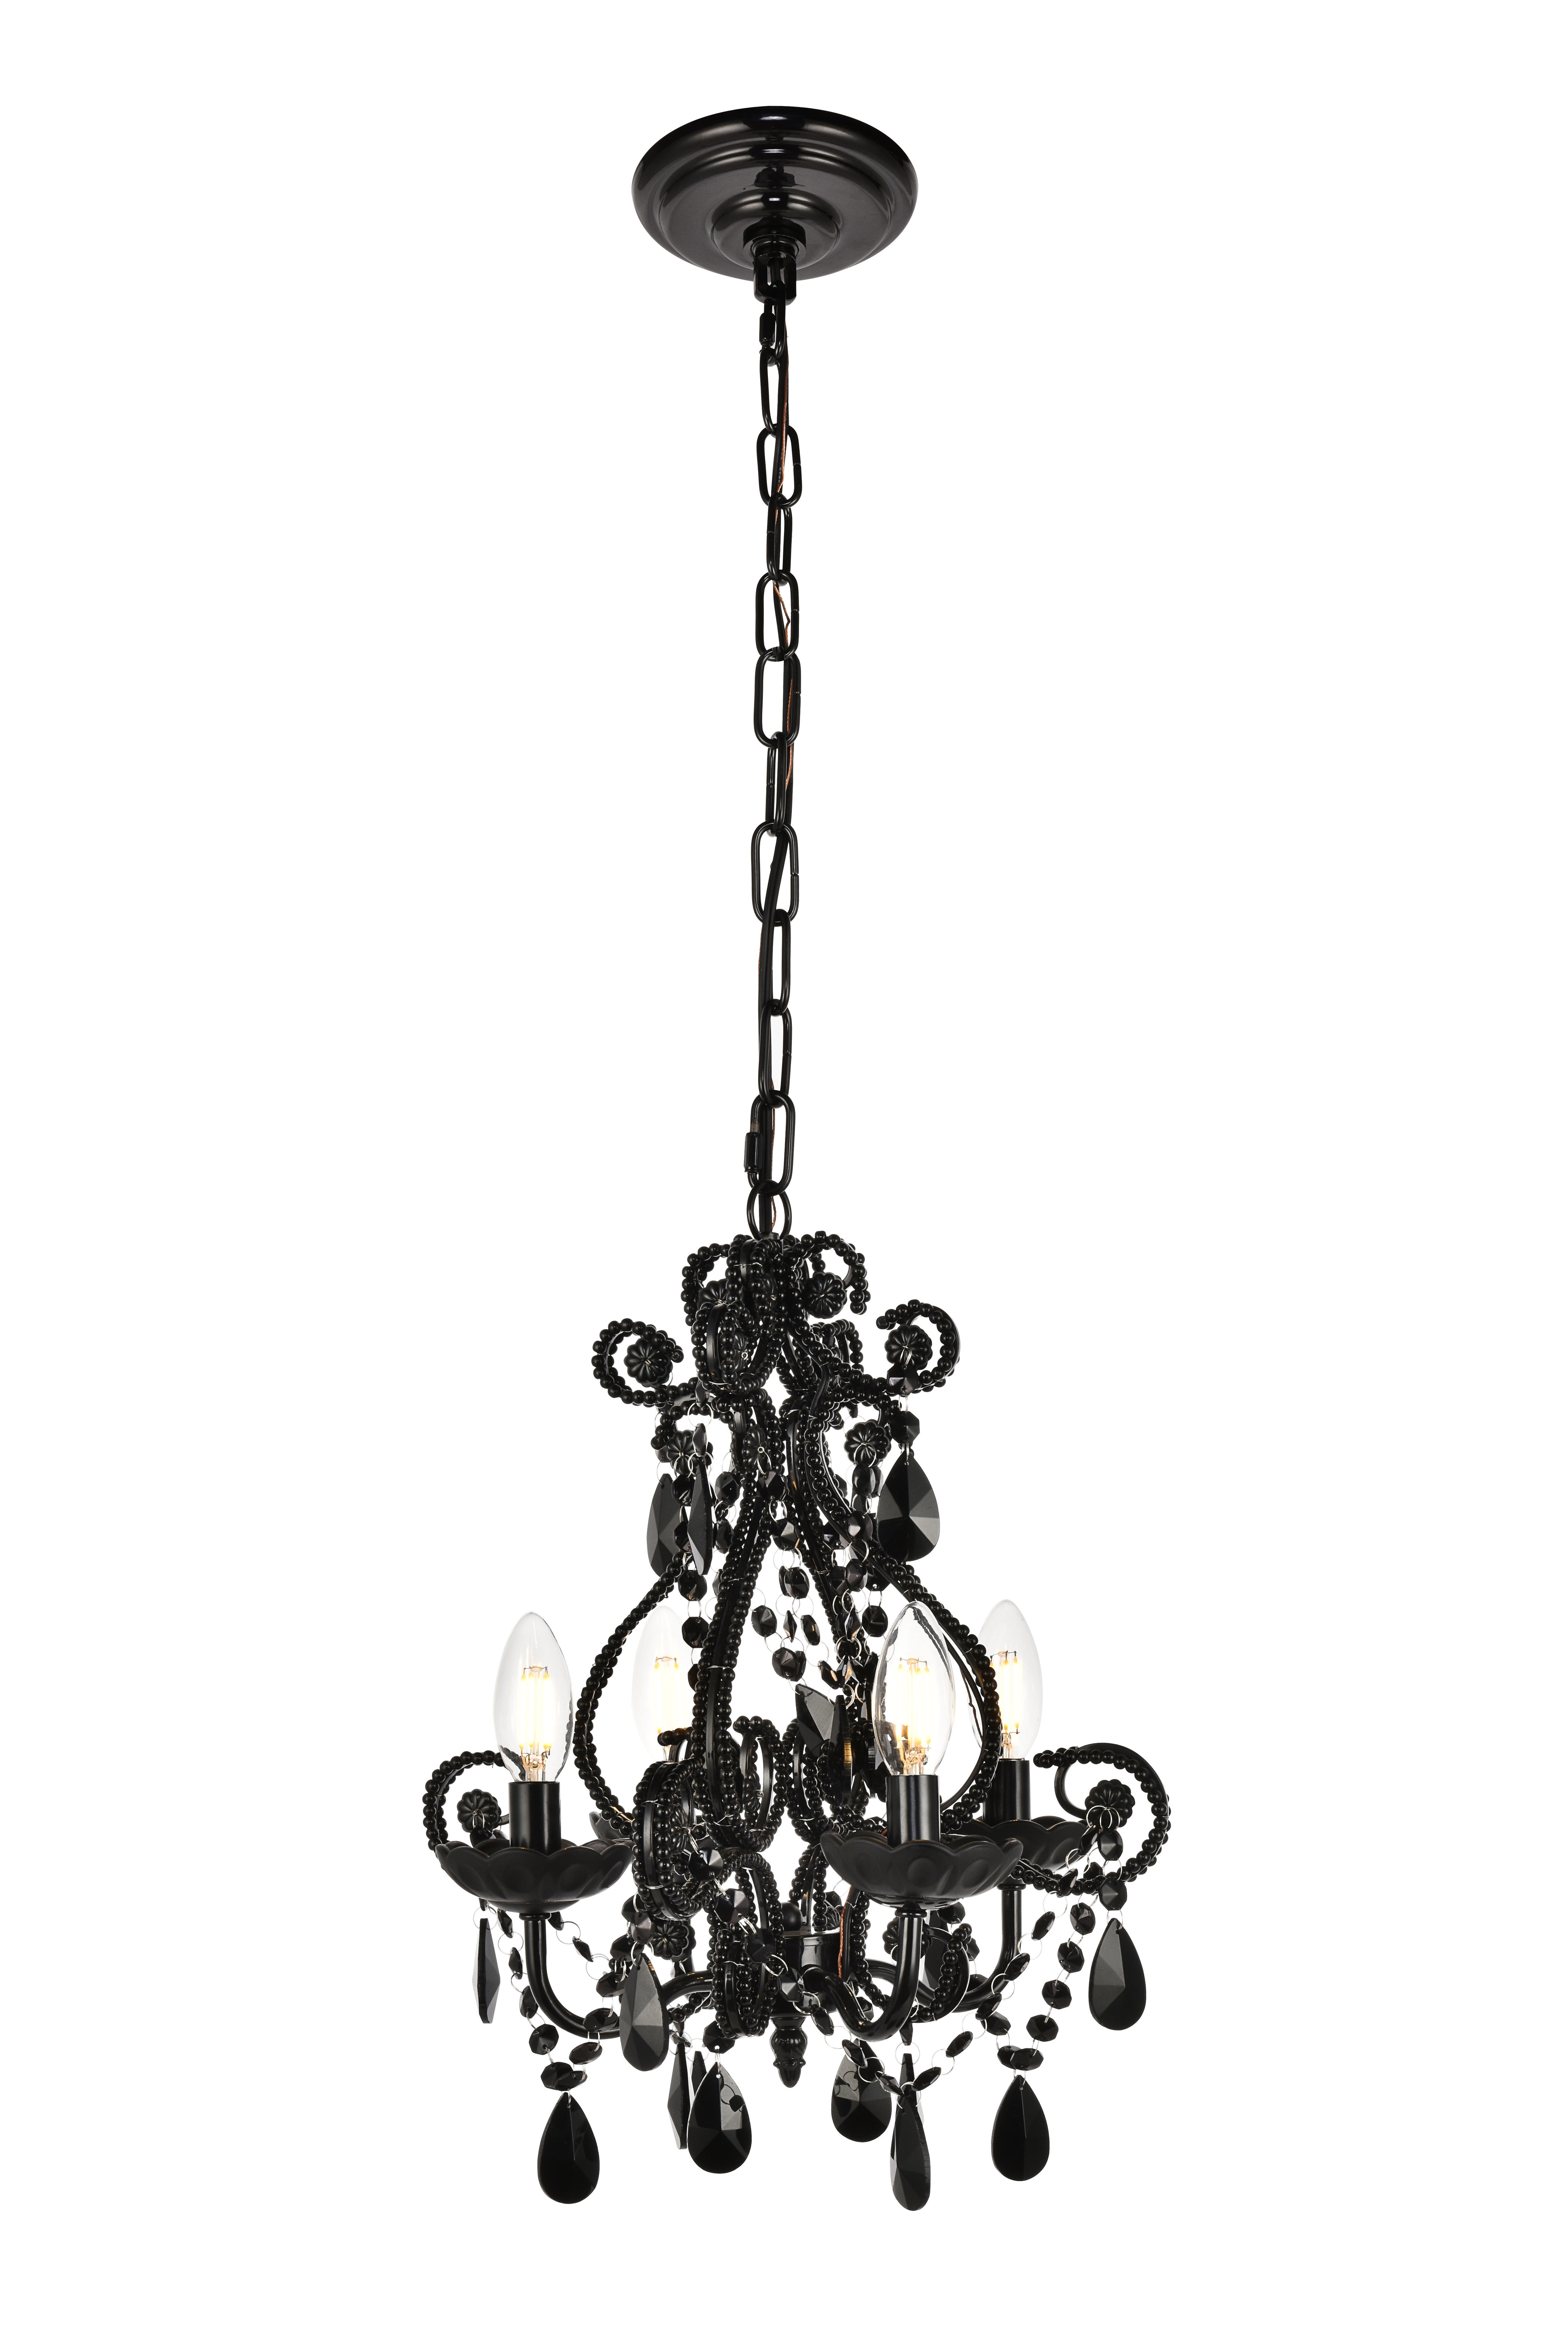 Burcott 4 Light Candle Style Chandelier Regarding Aldora 4 Light Candle Style Chandeliers (View 7 of 30)